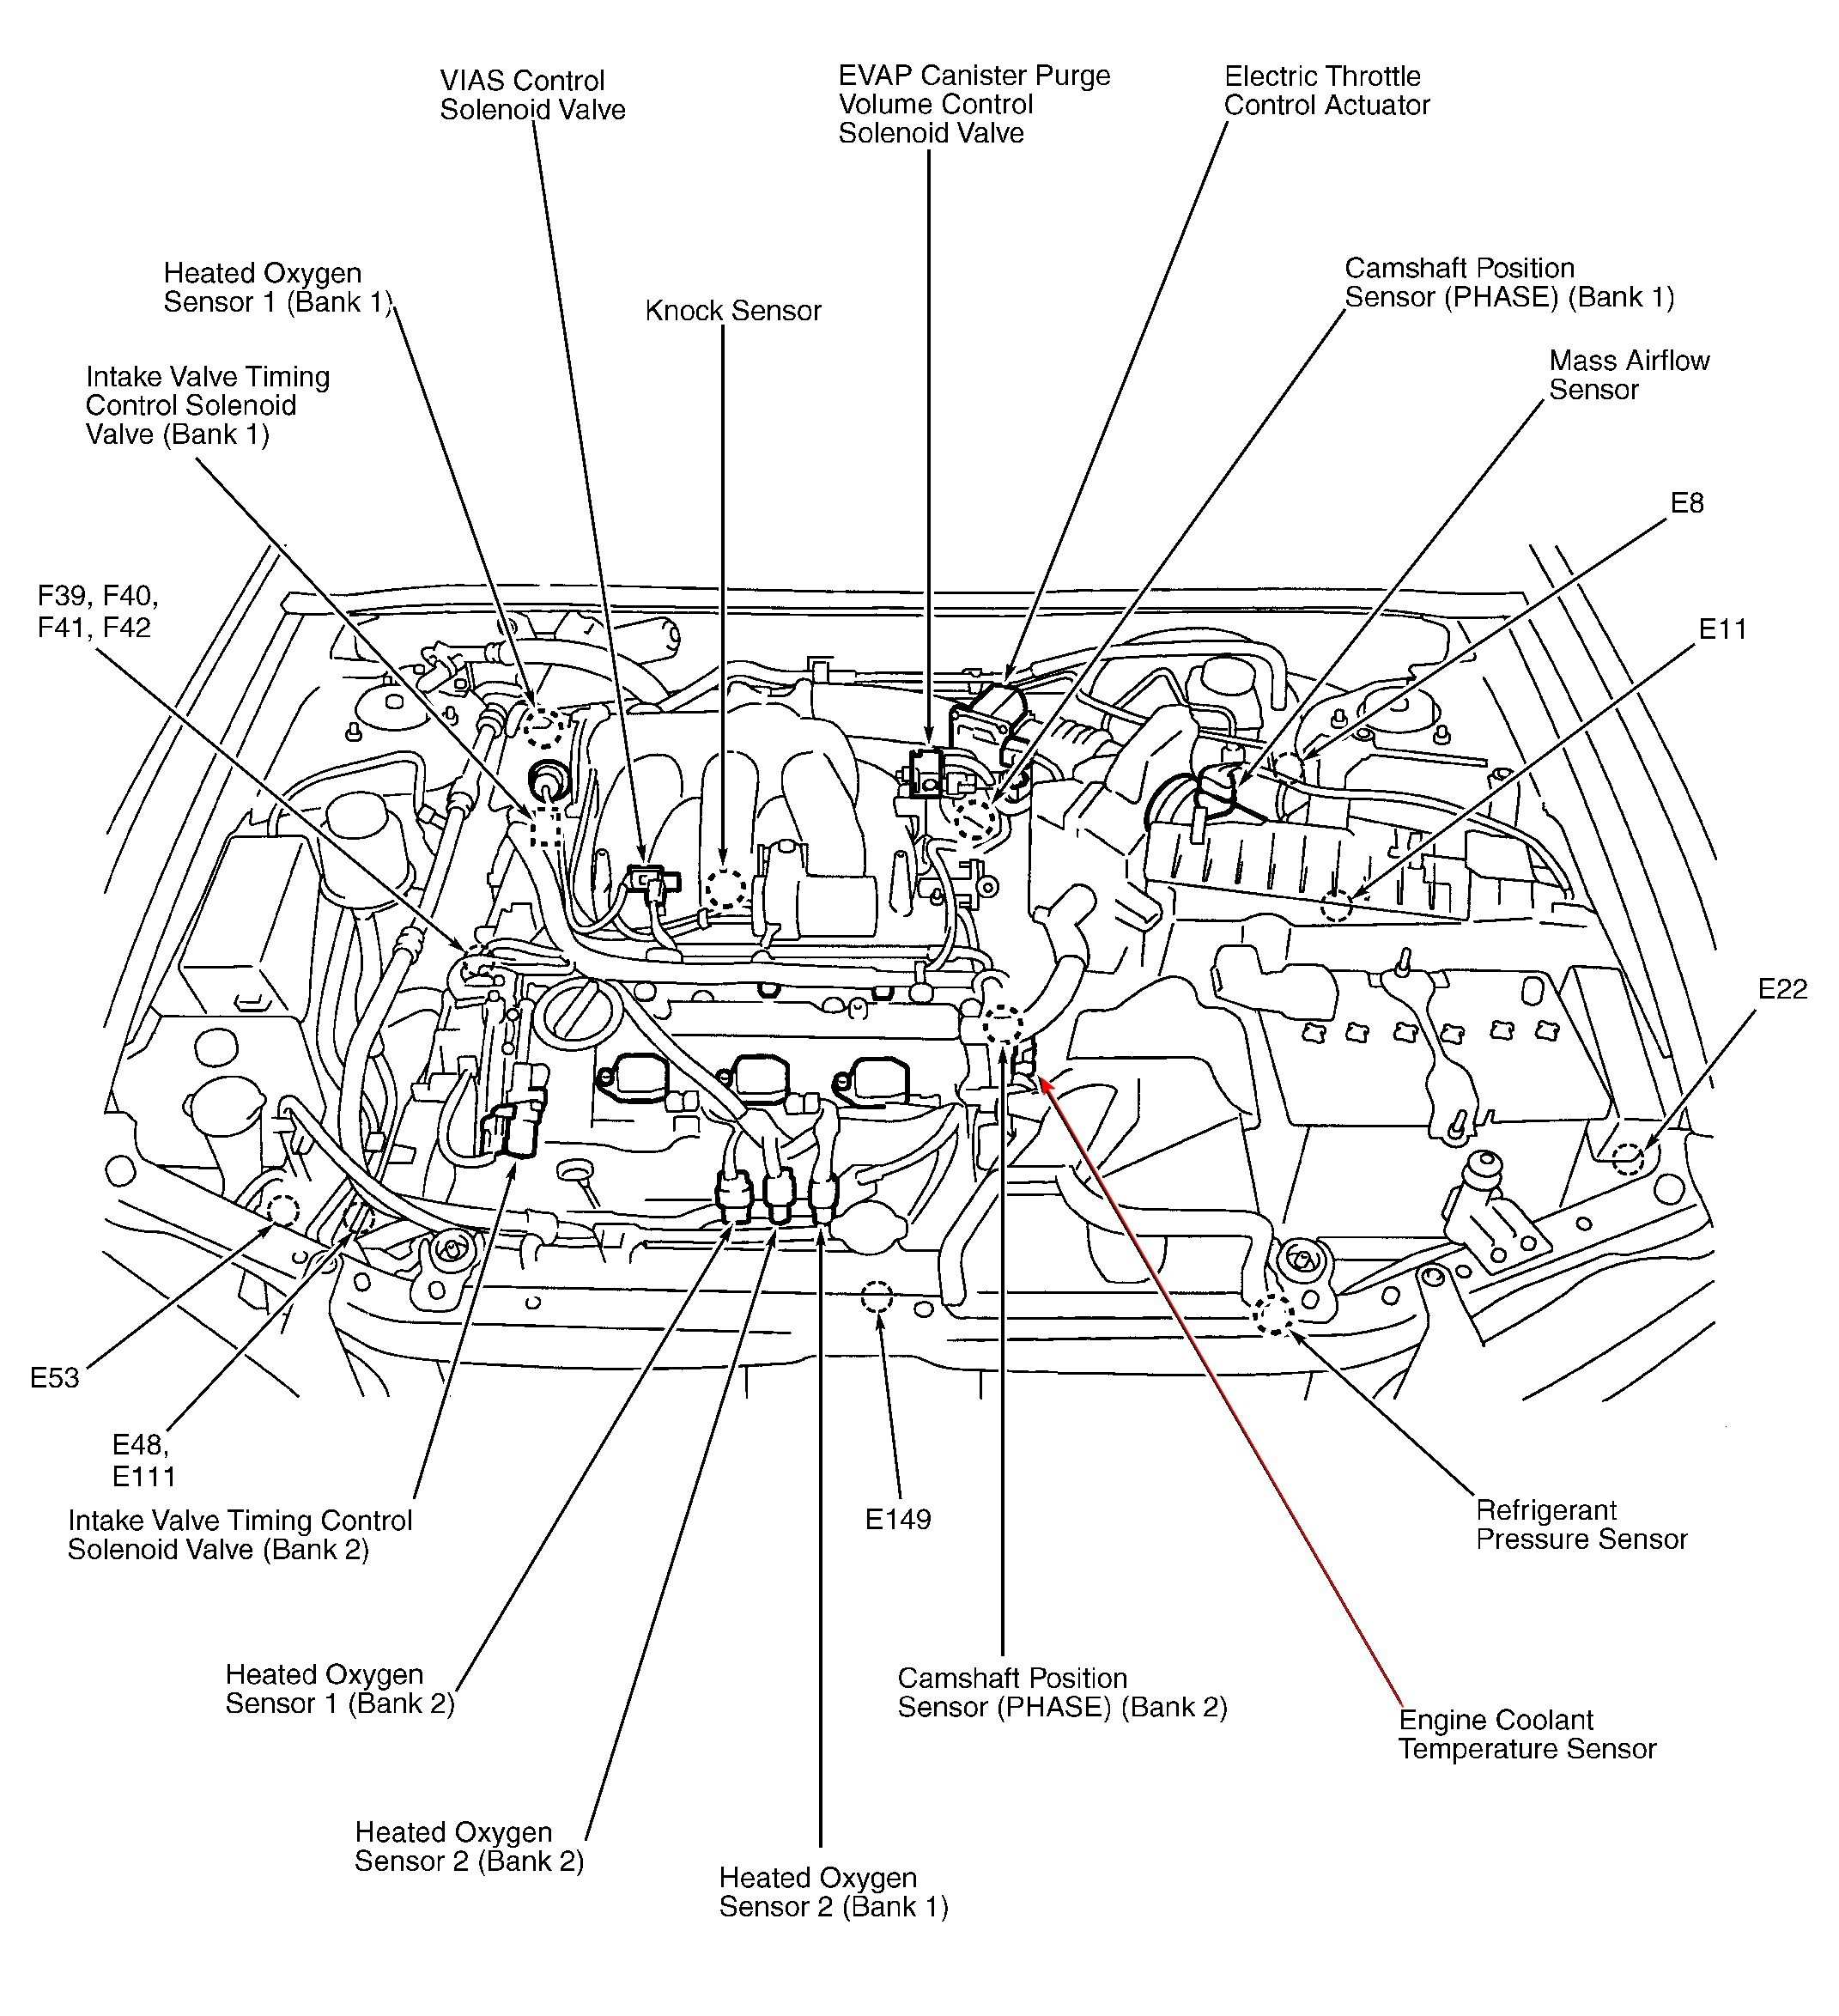 medium resolution of wiring diagram for 2008 dodge nitro switch diagram u2022 rh 140 82 24 126